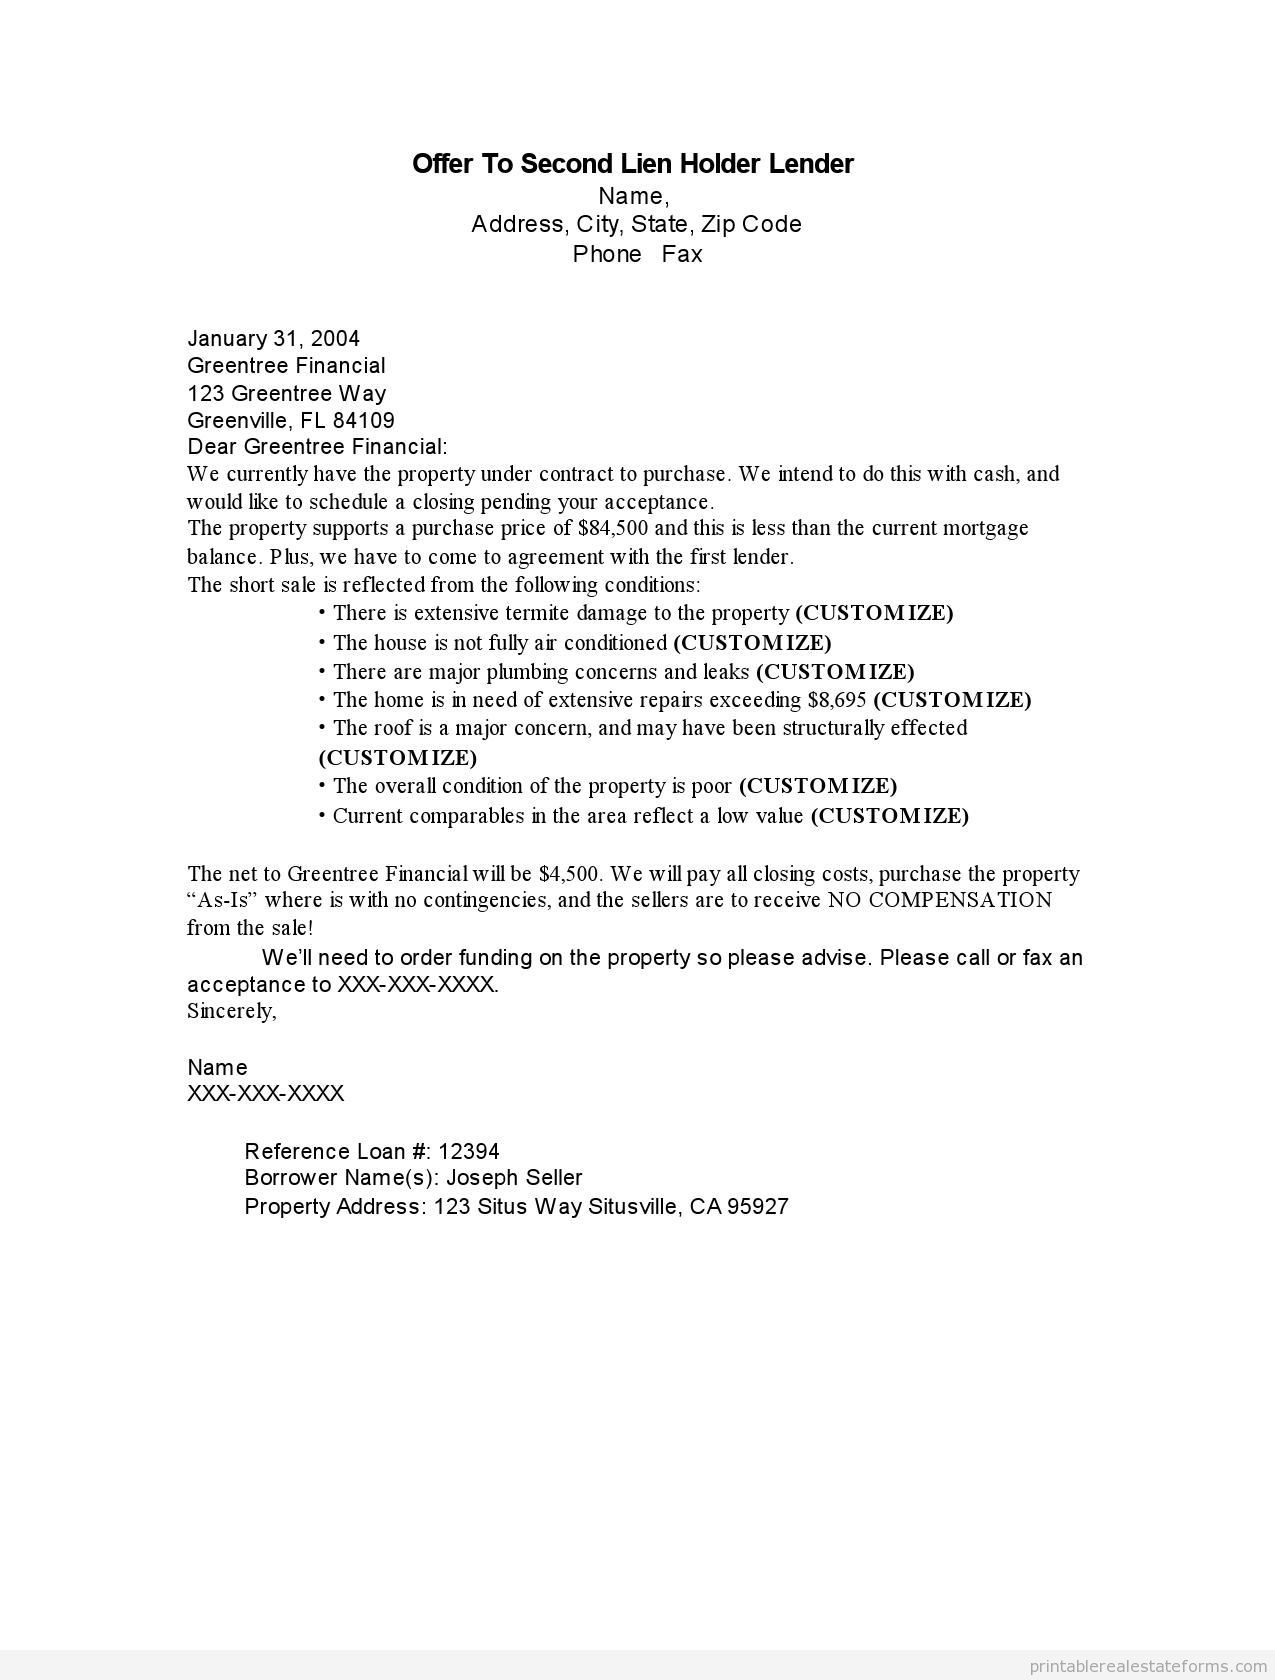 Intent to Lien Letter Template - Letter Intent to Lien Sample Printable Fer Second Holder Lender